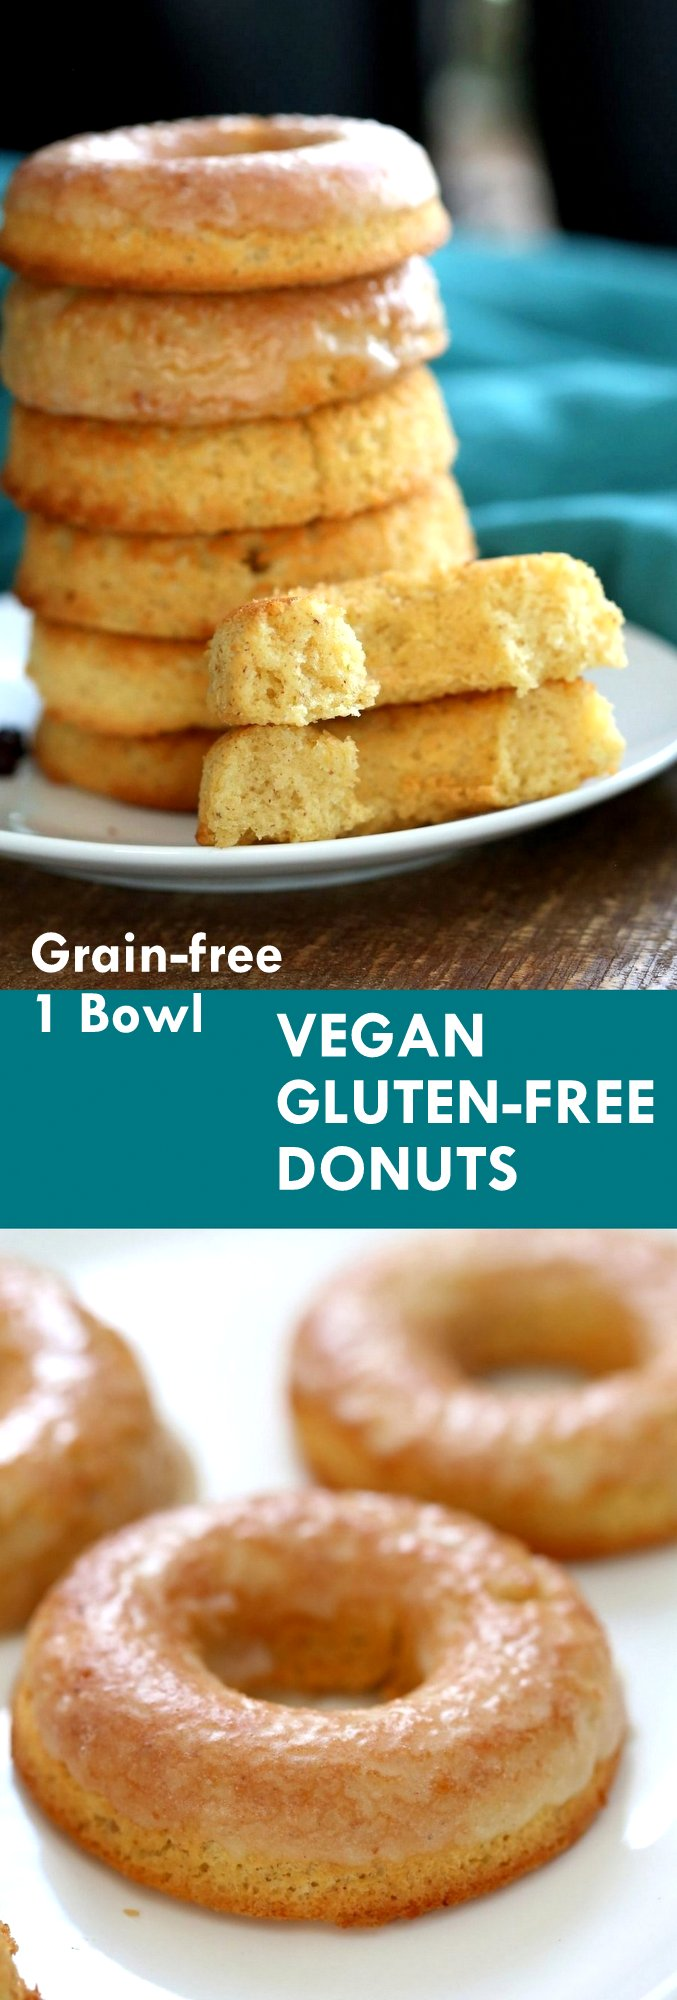 Vegan Gluten-free Lemon Donuts. These baked gluten free doughnuts are amazingly soft. They are grain-free, Easy, Zesty. Use lemon or lime. Baked Gluten-free Doughnuts. Vegan Glutenfree Grainfree Soyfree Recipe. Can be nutfree. VeganRicha.com